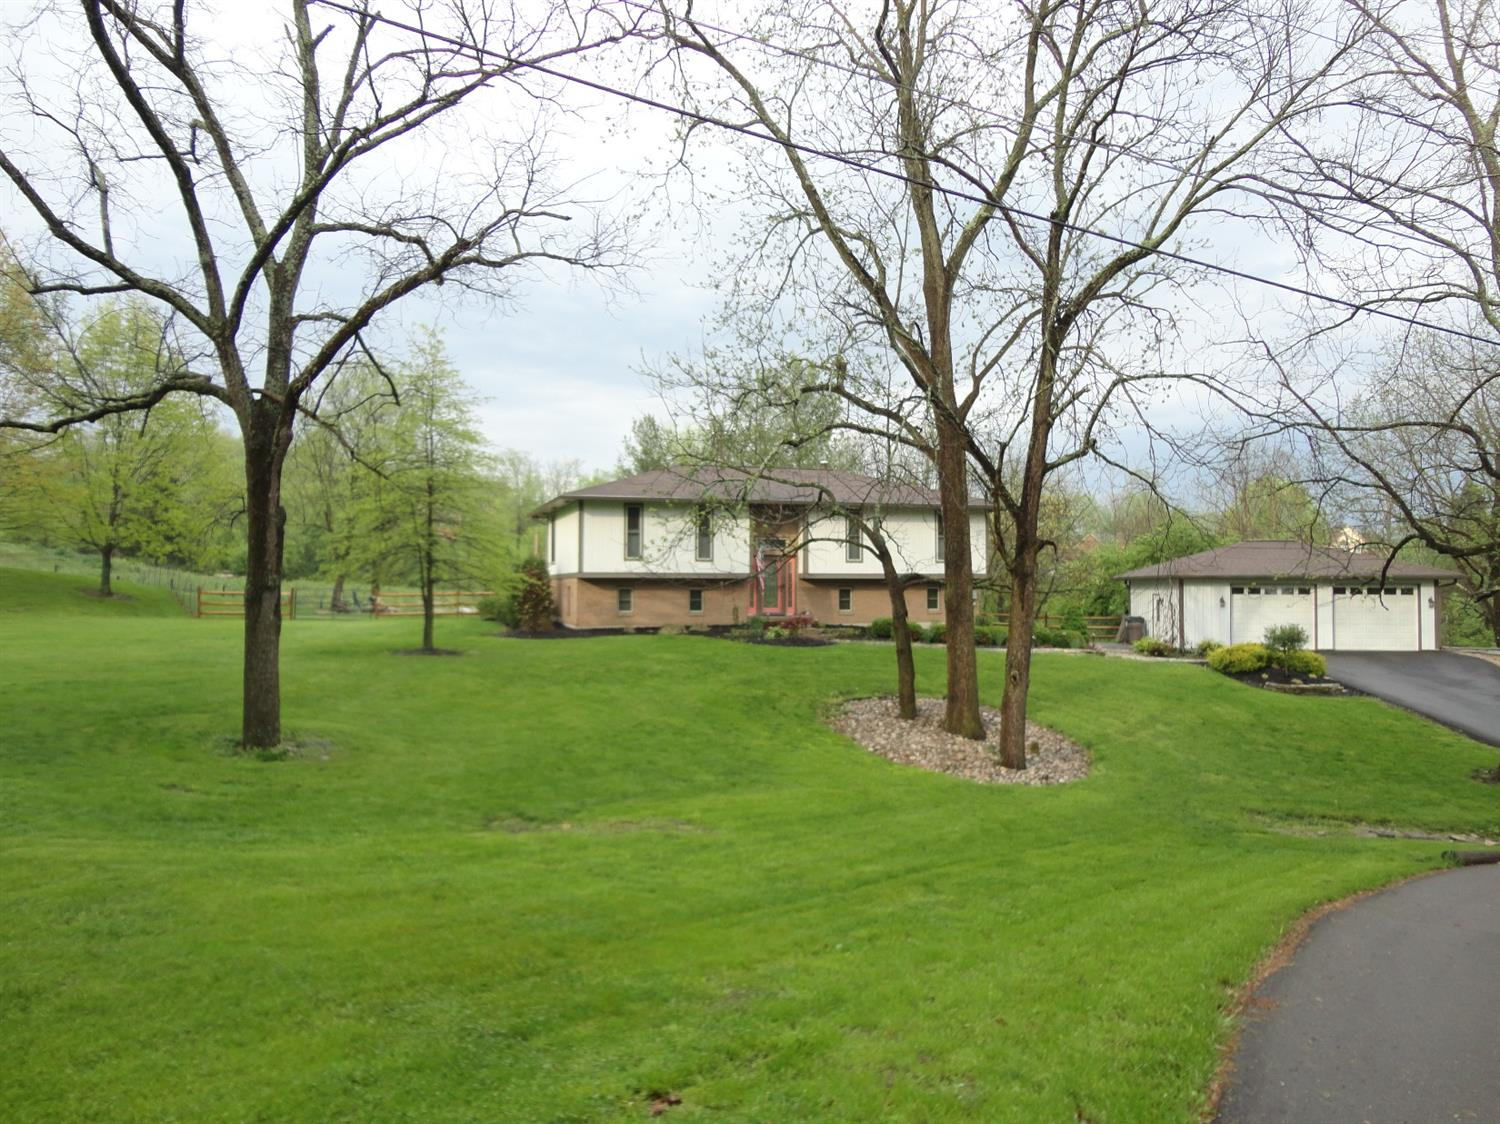 5022 Staas Rd Green Twp. - Hamilton Co., OH